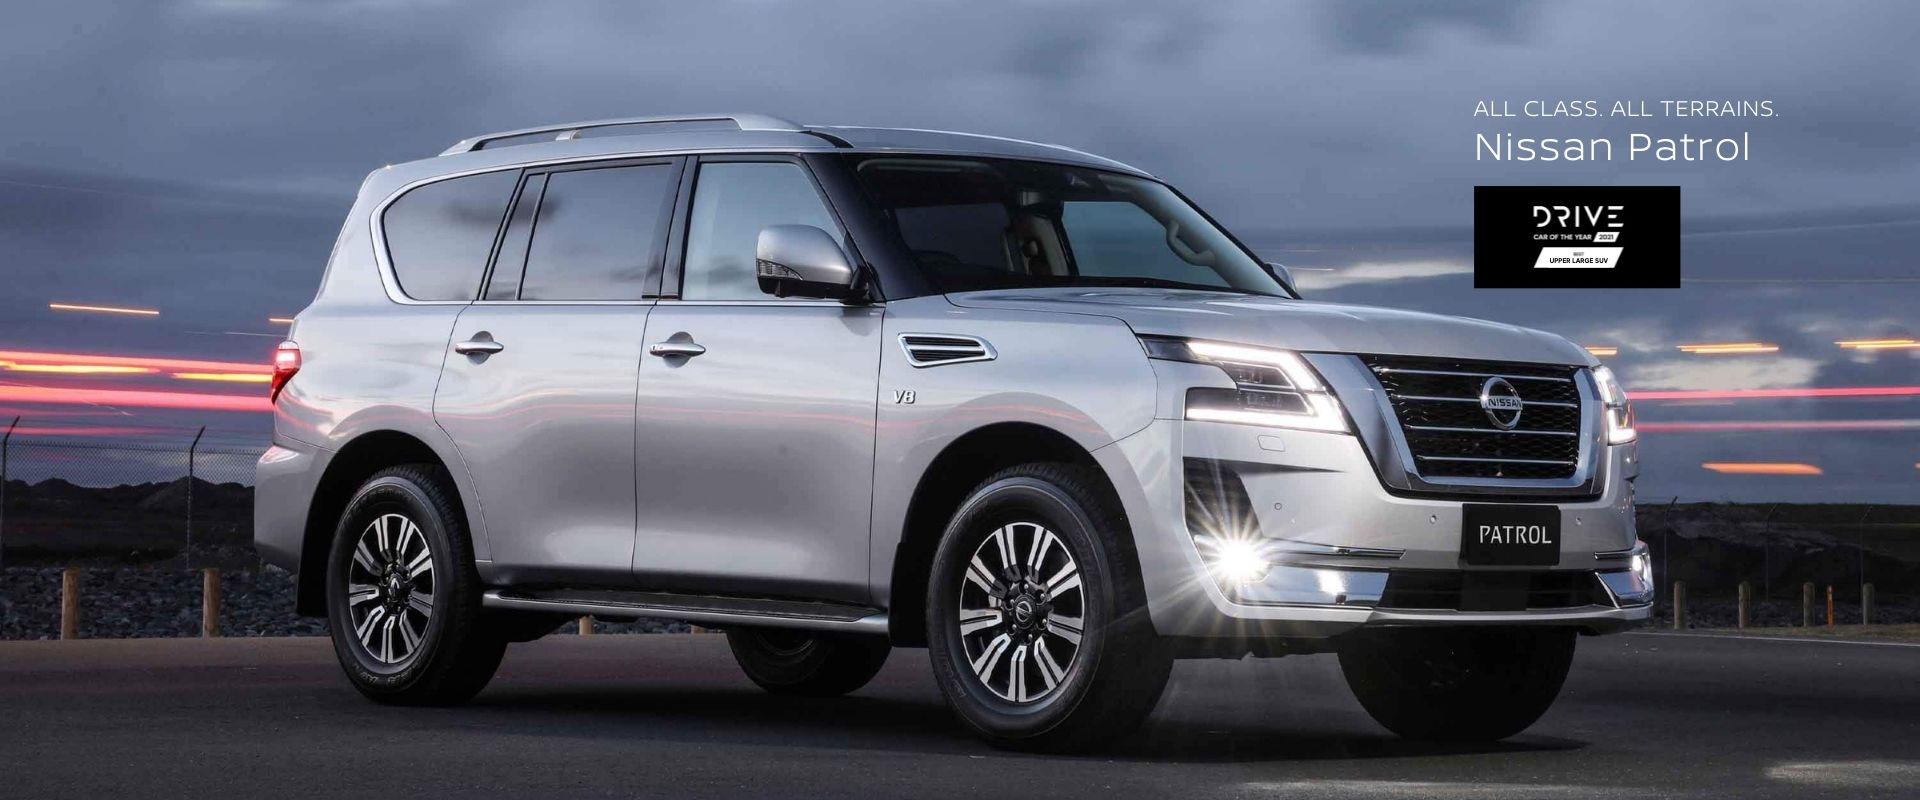 Nissan Partol Nissan Patrol Drive Car of the Year 2021 Best Upper Large SUV